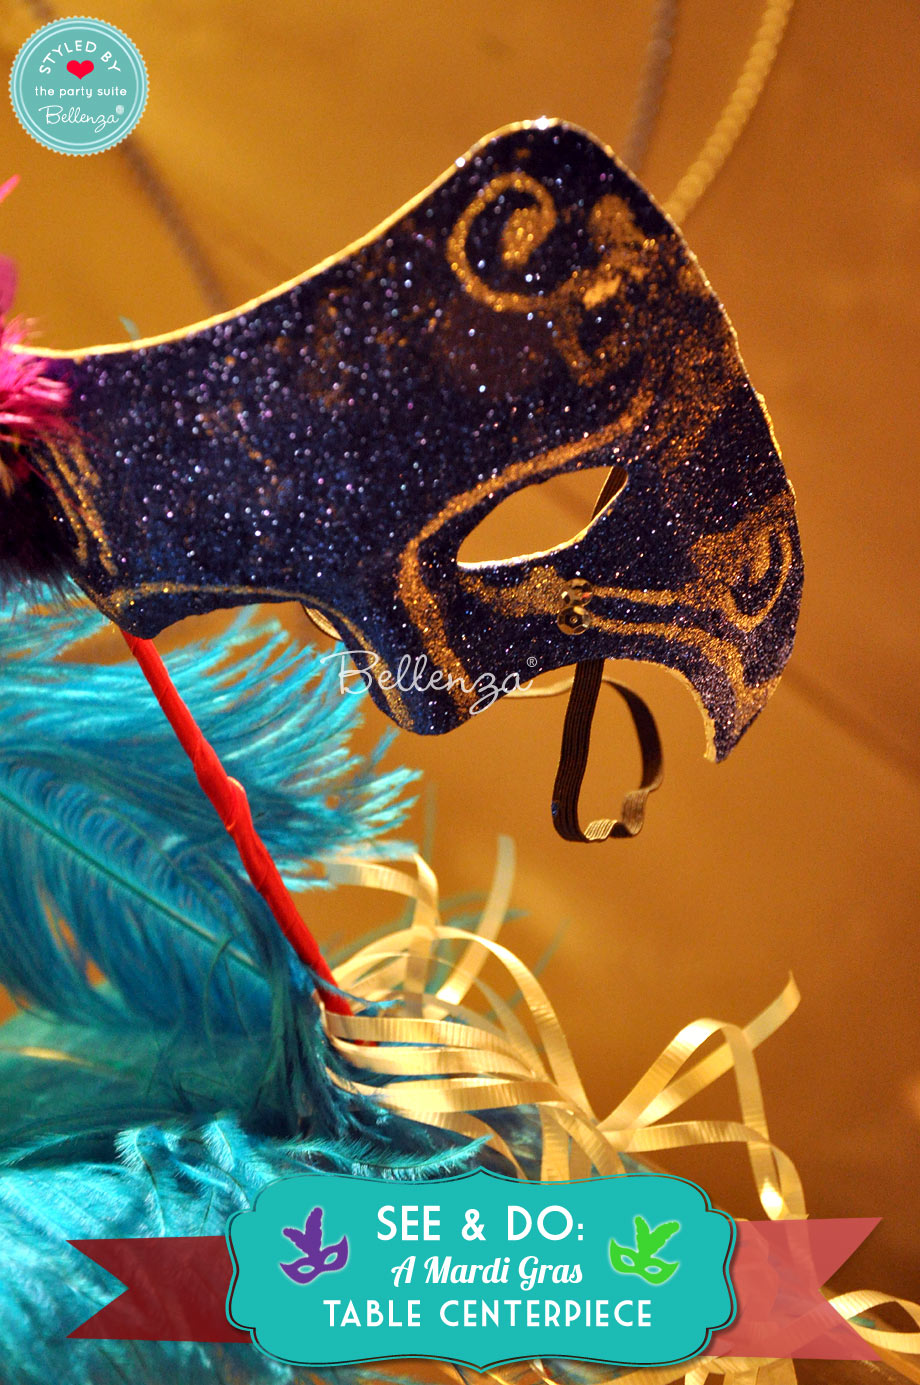 Black Mardi Gras mask with teal feathers.